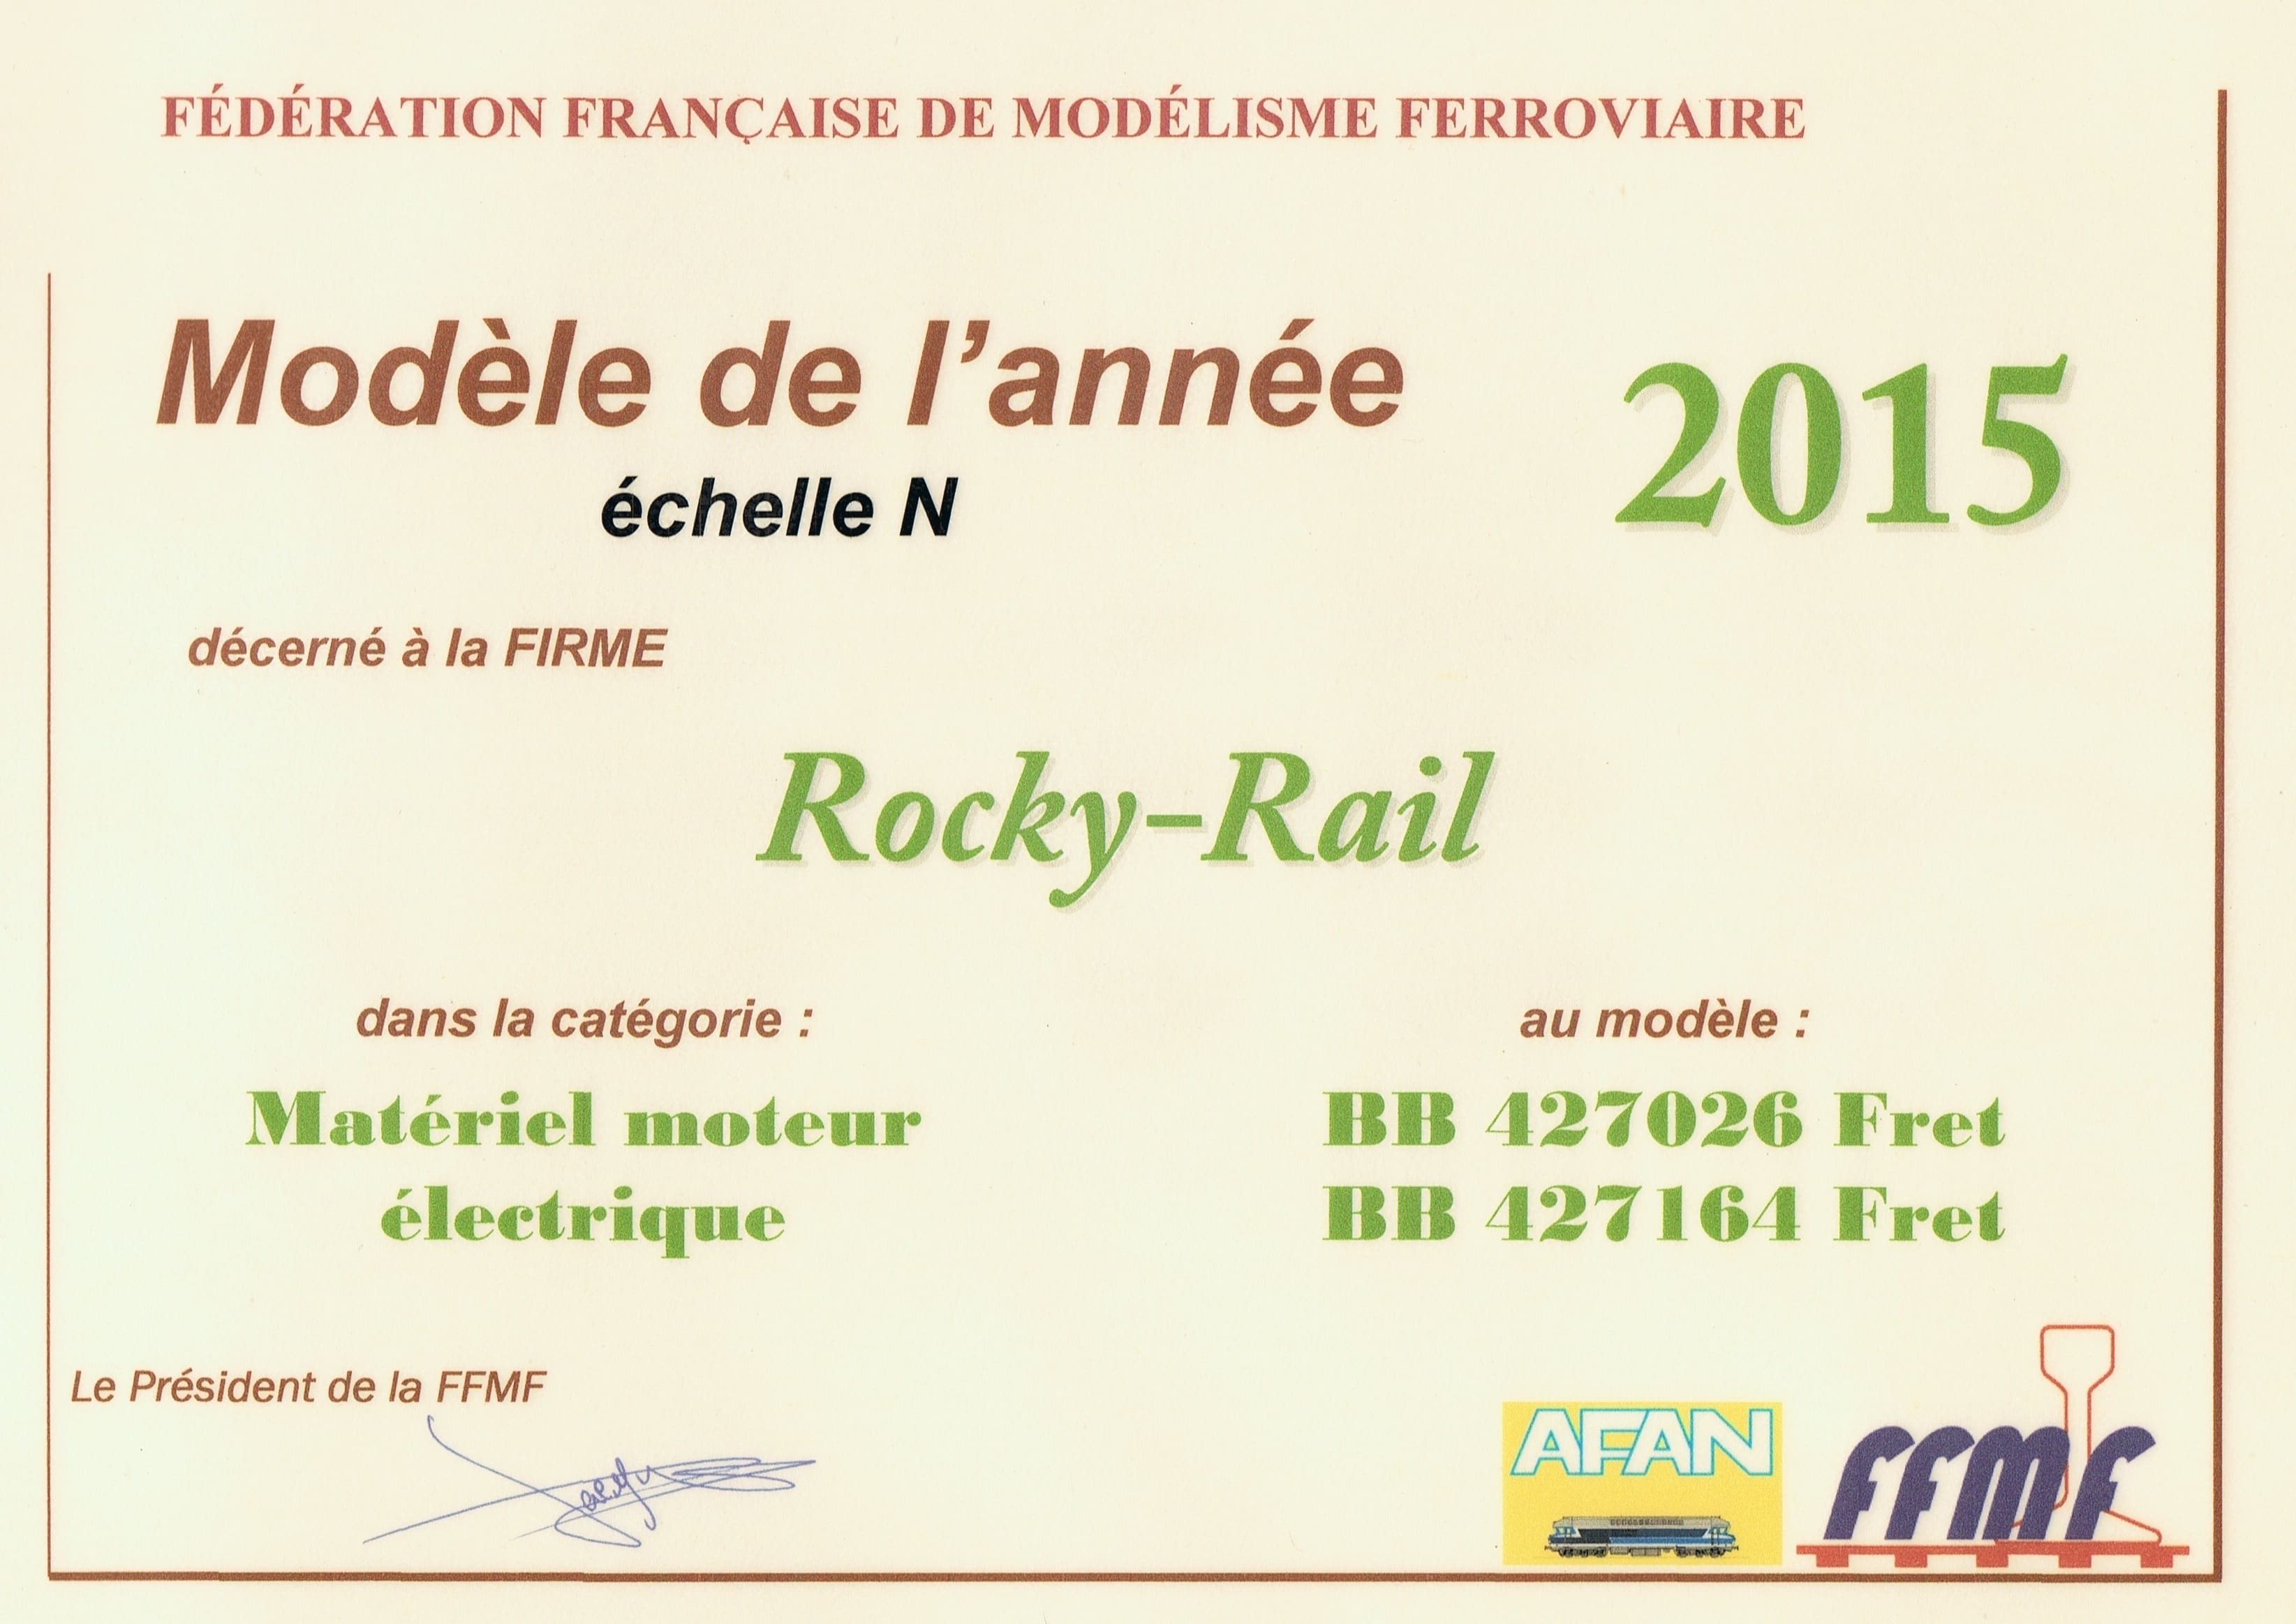 """diploma of """"model of the year scale n"""" for our bb rocky rail modele de l annee 2015 echelle n"""